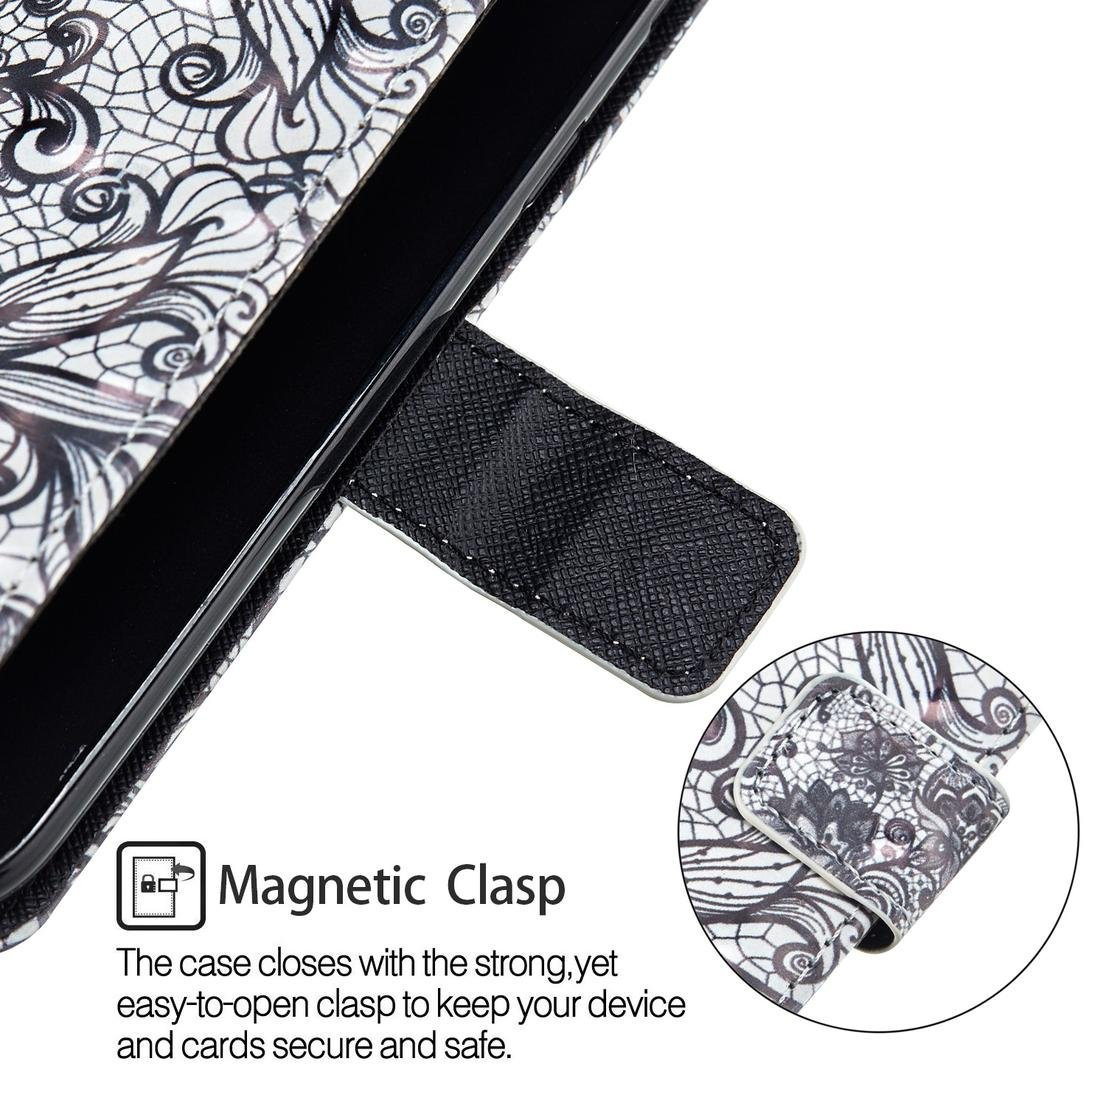 Amazon.com : Galaxy S7 Edge Case, Durable Pu Leather Shock Proof Magnetic Cover Flip Stand Wallet Card Holder Lightweight Bumper Strap Folding Case Birthday ...